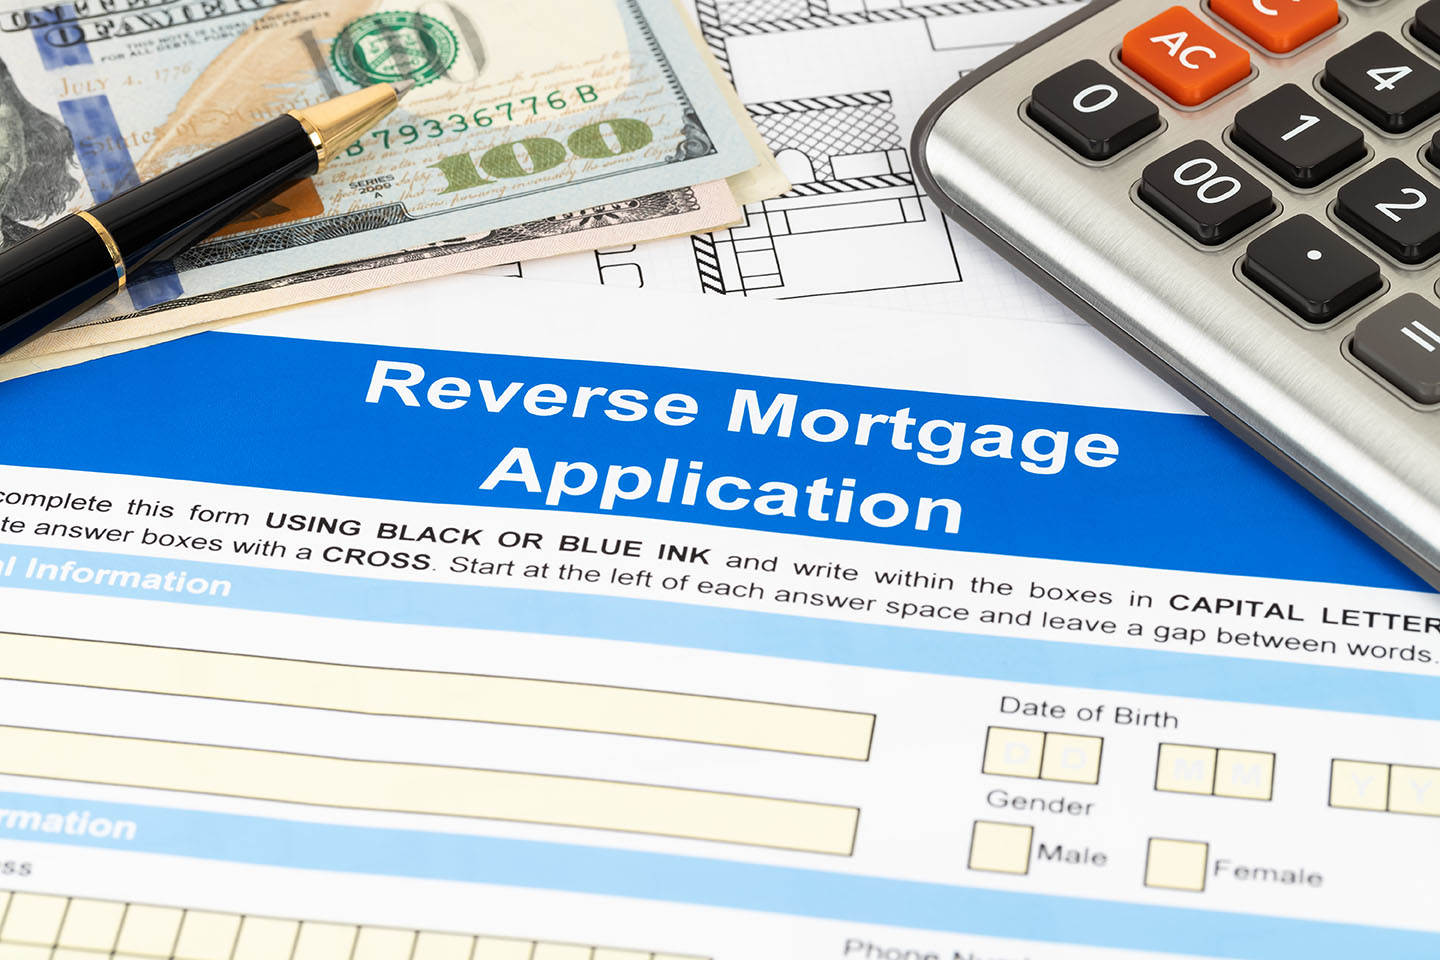 Reverse mortgage application form, financial concept